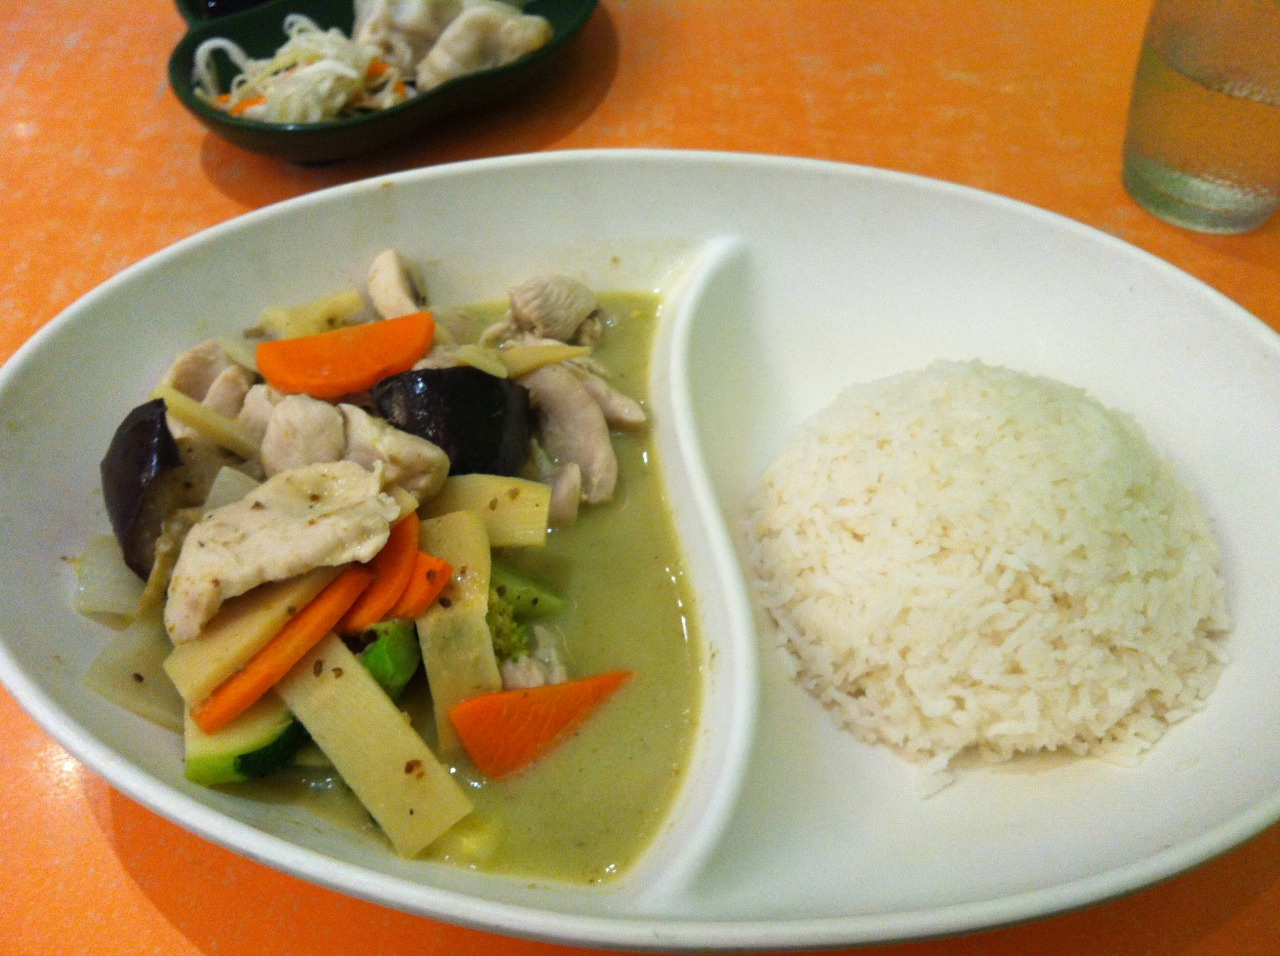 Melbourne cheap eats: Green thai chicken curry with rice. A considerably large portion and tasted fantastic.